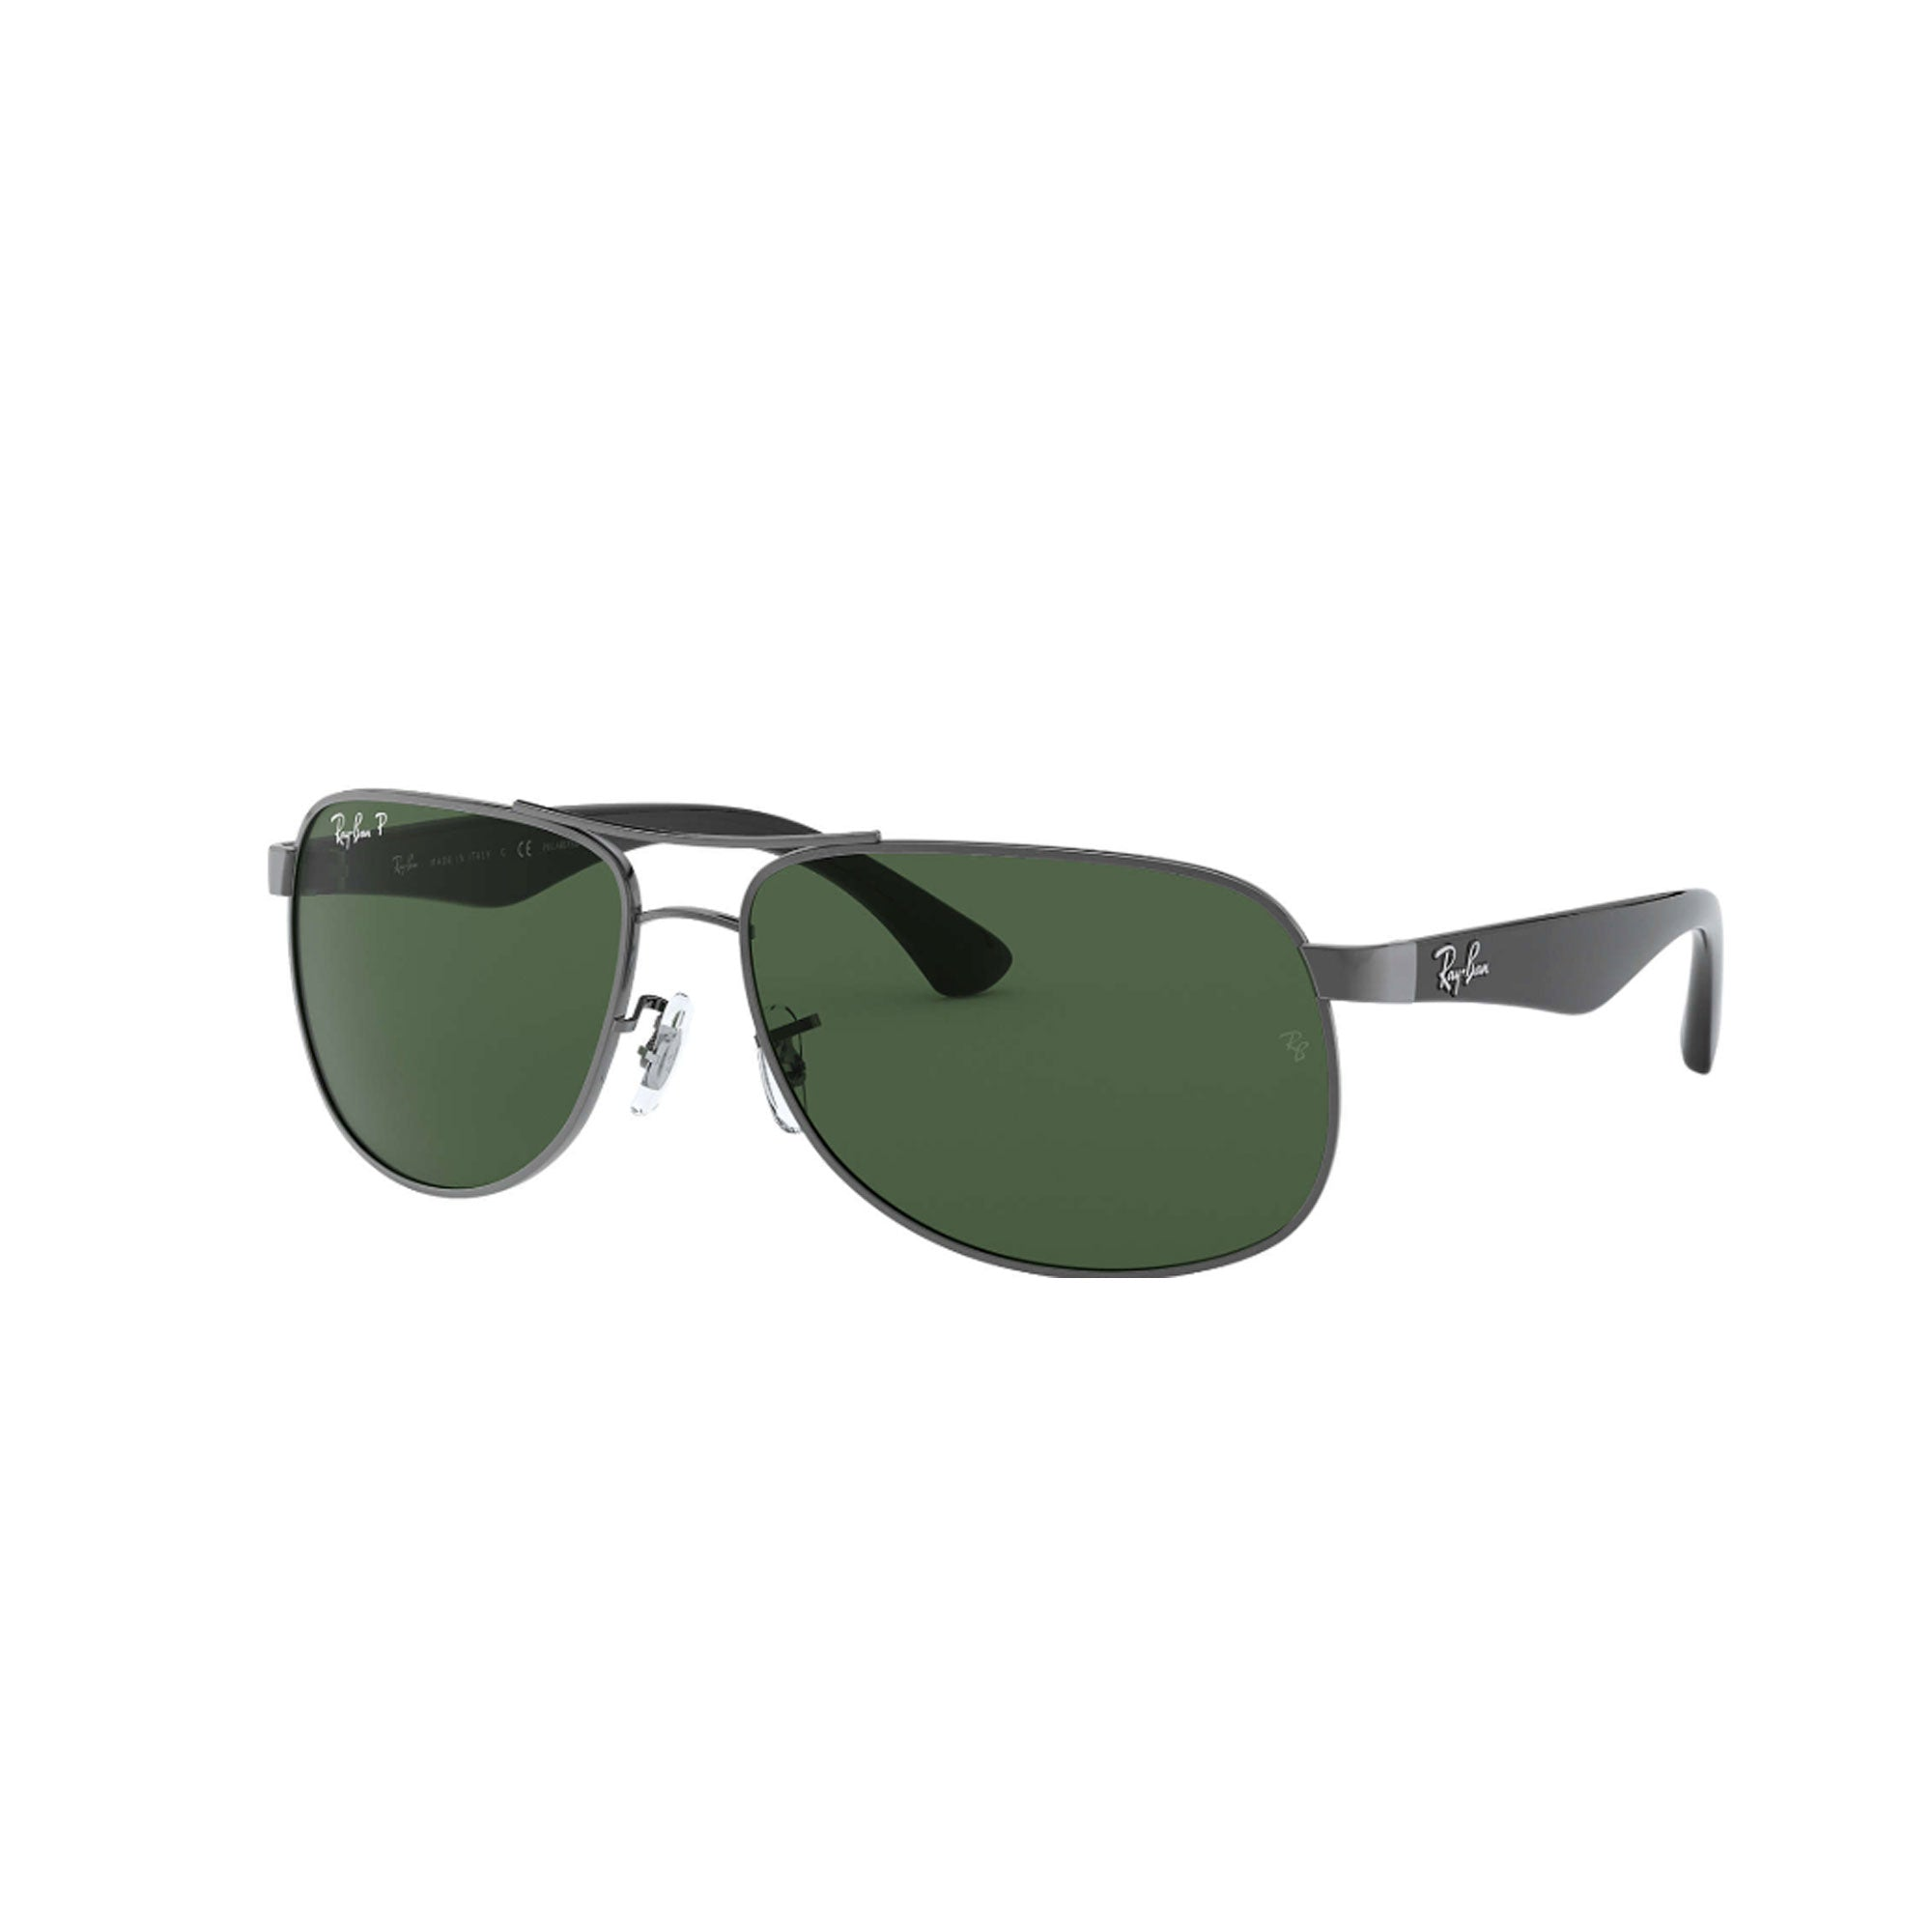 Ray-Ban 3502 Classic Men's Sunglasses - Gunmetal/Green